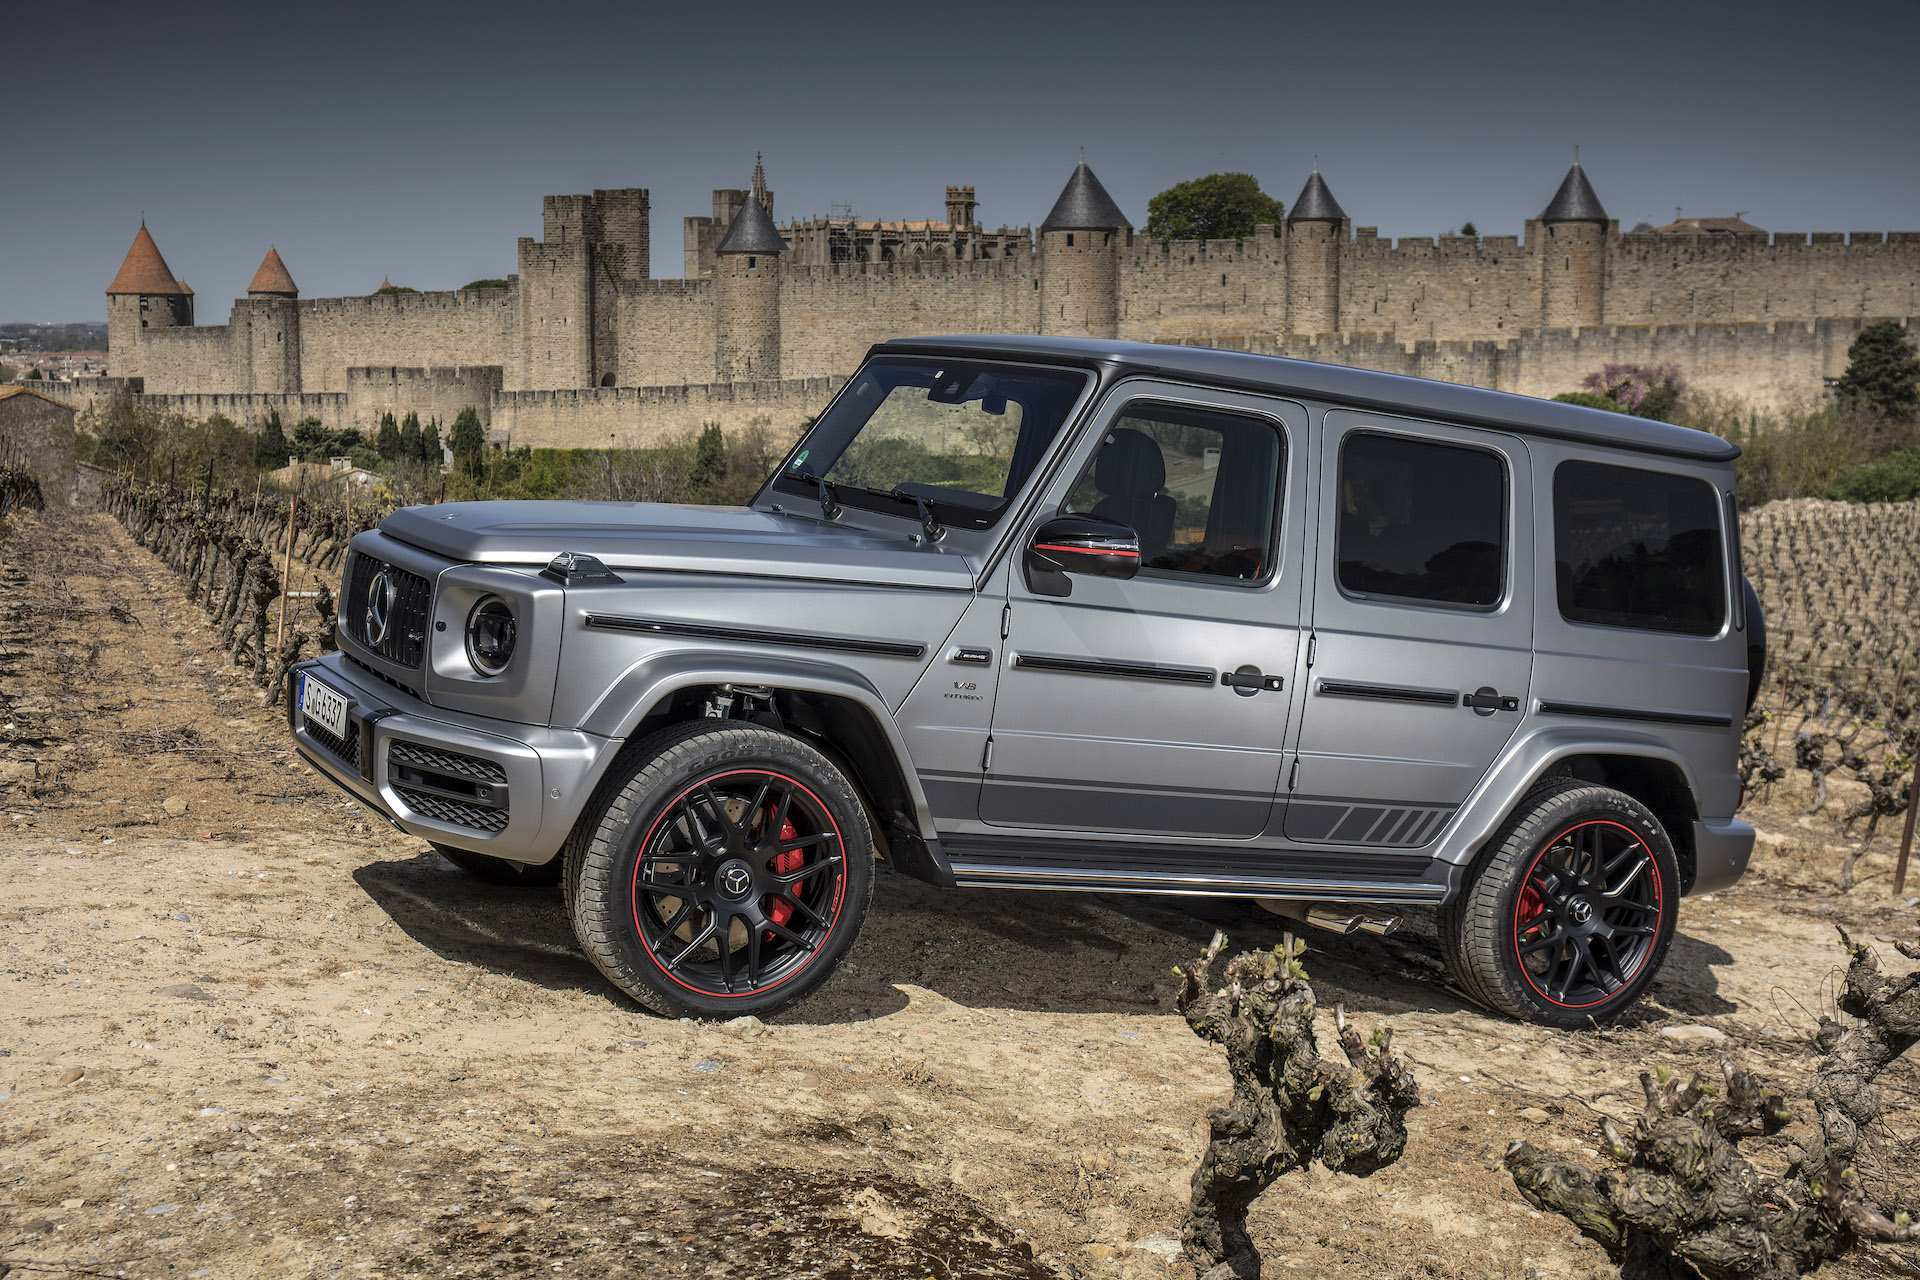 87 Best Review 2019 Mercedes G Wagon For Sale Price Performance by 2019 Mercedes G Wagon For Sale Price